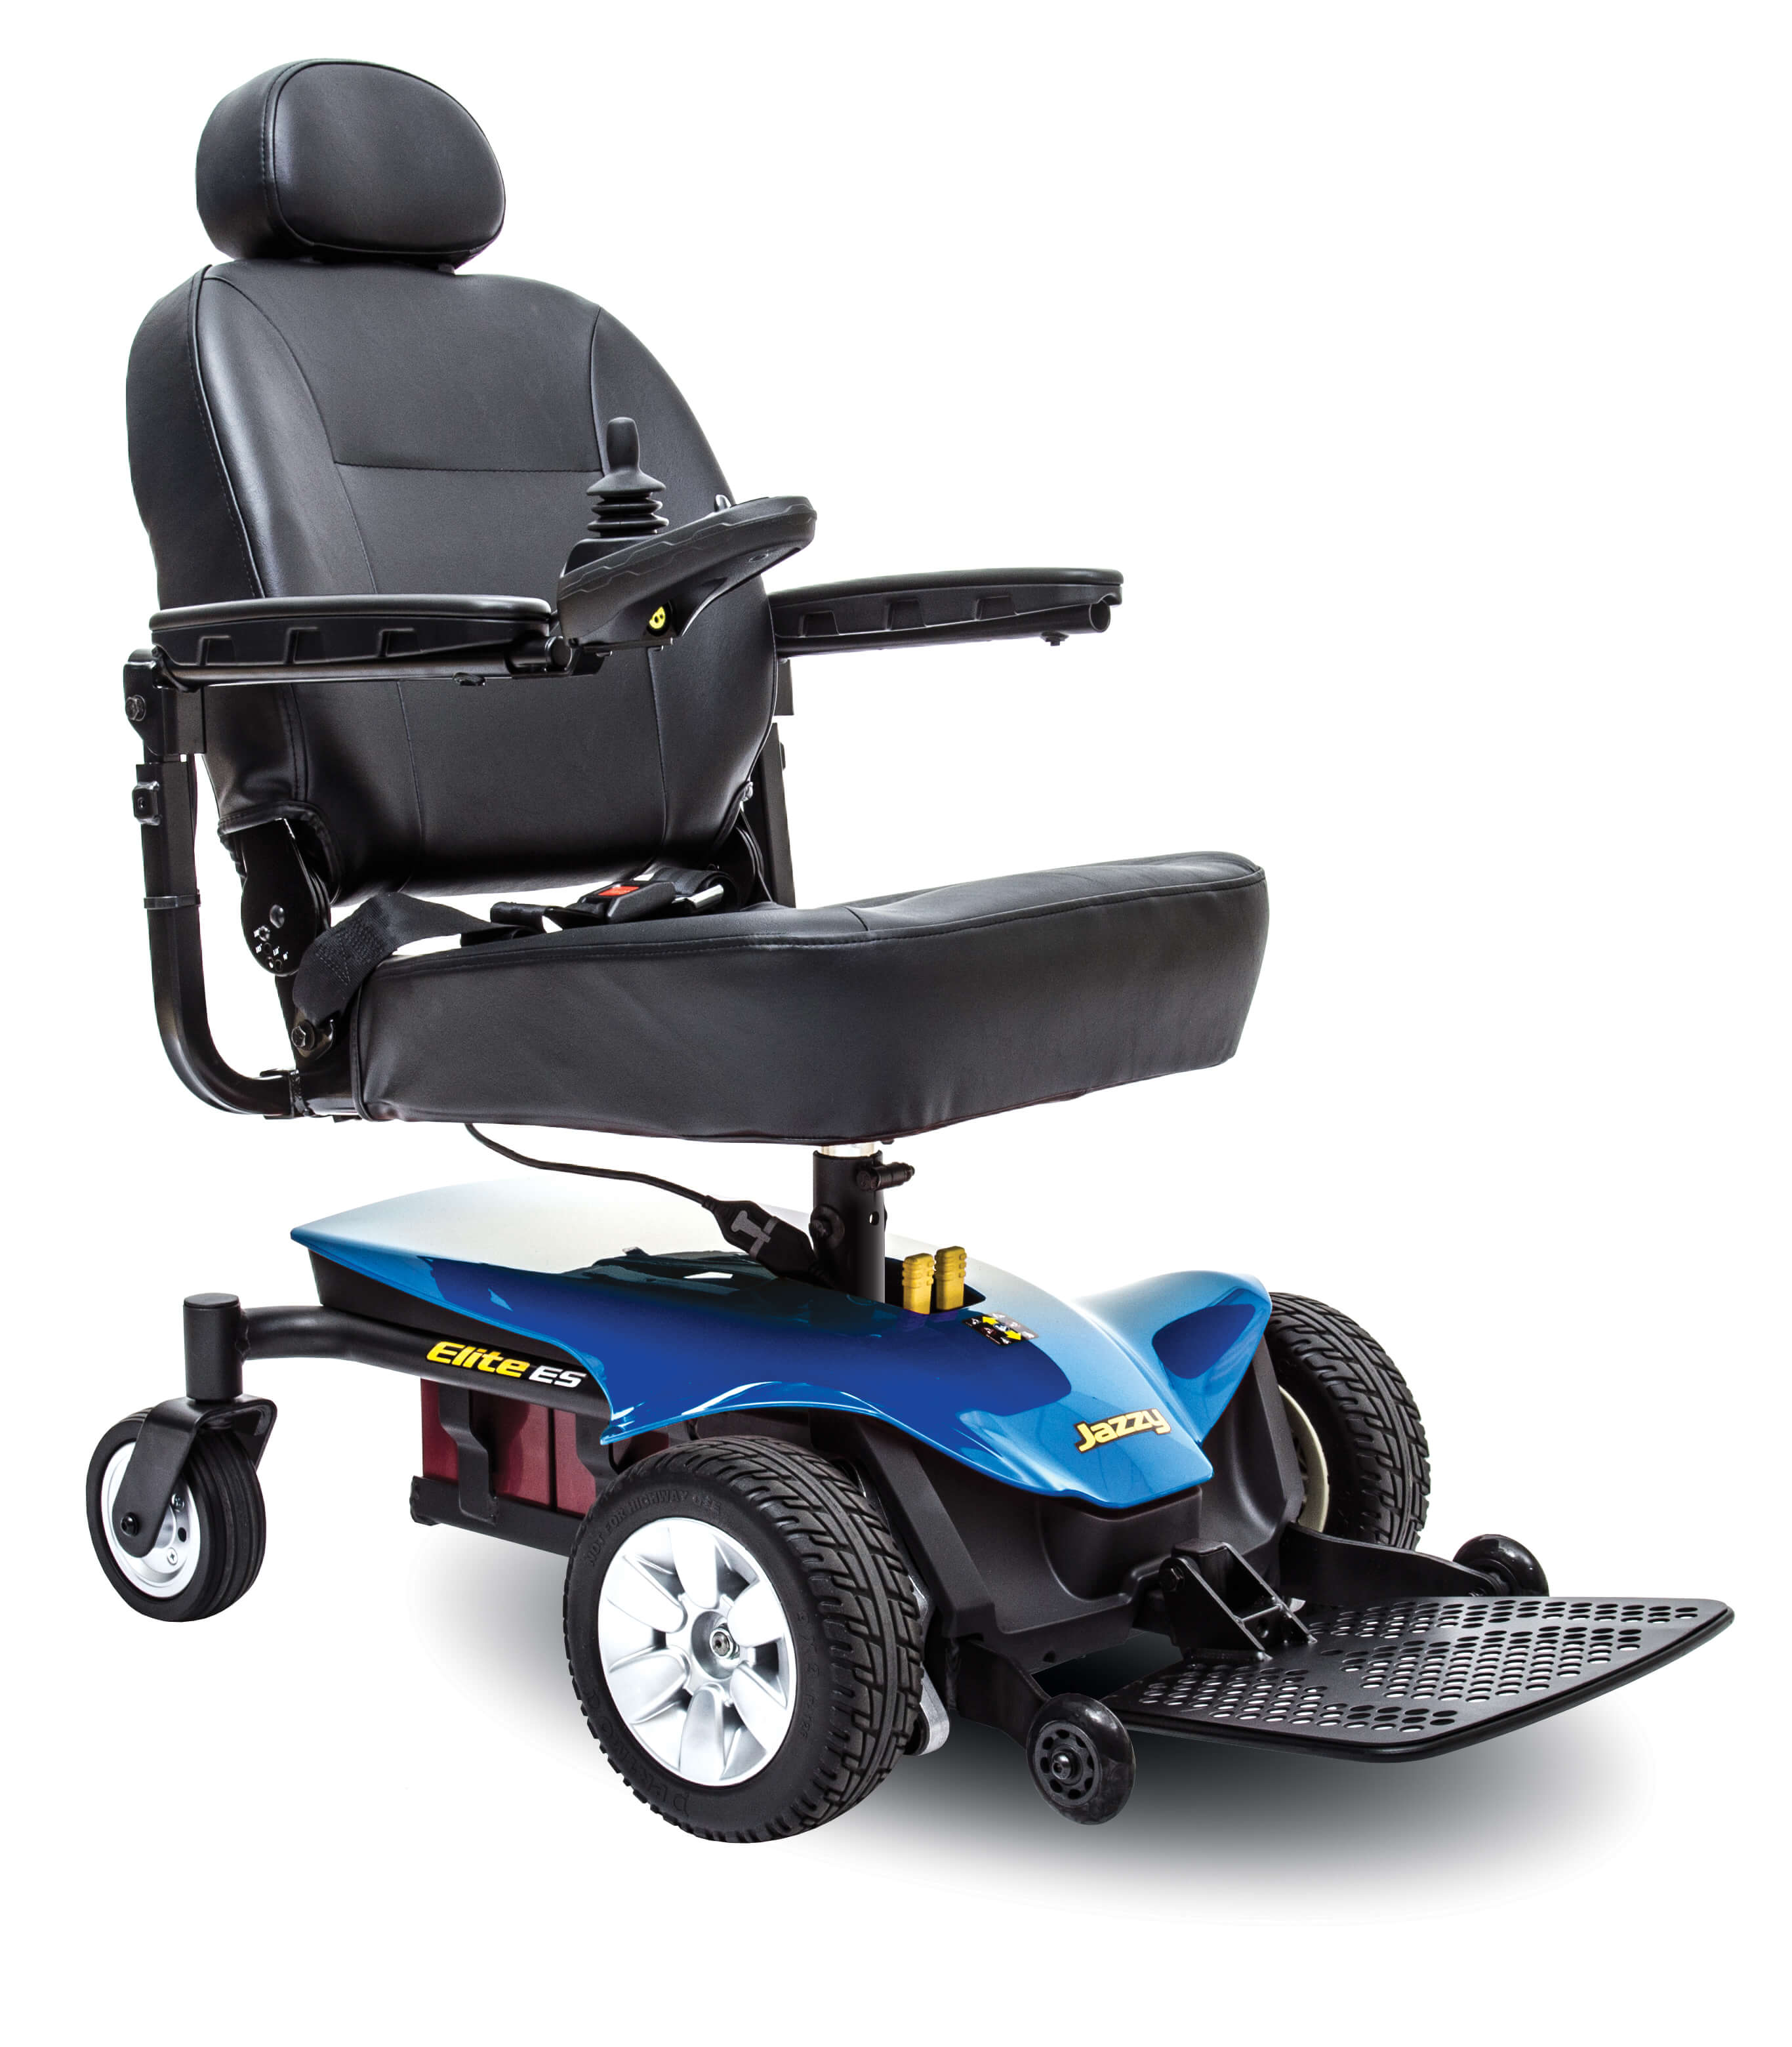 motor chairs for sale chair exercises the elderly dvd jazzy elite es power wheelchair by pride mobility